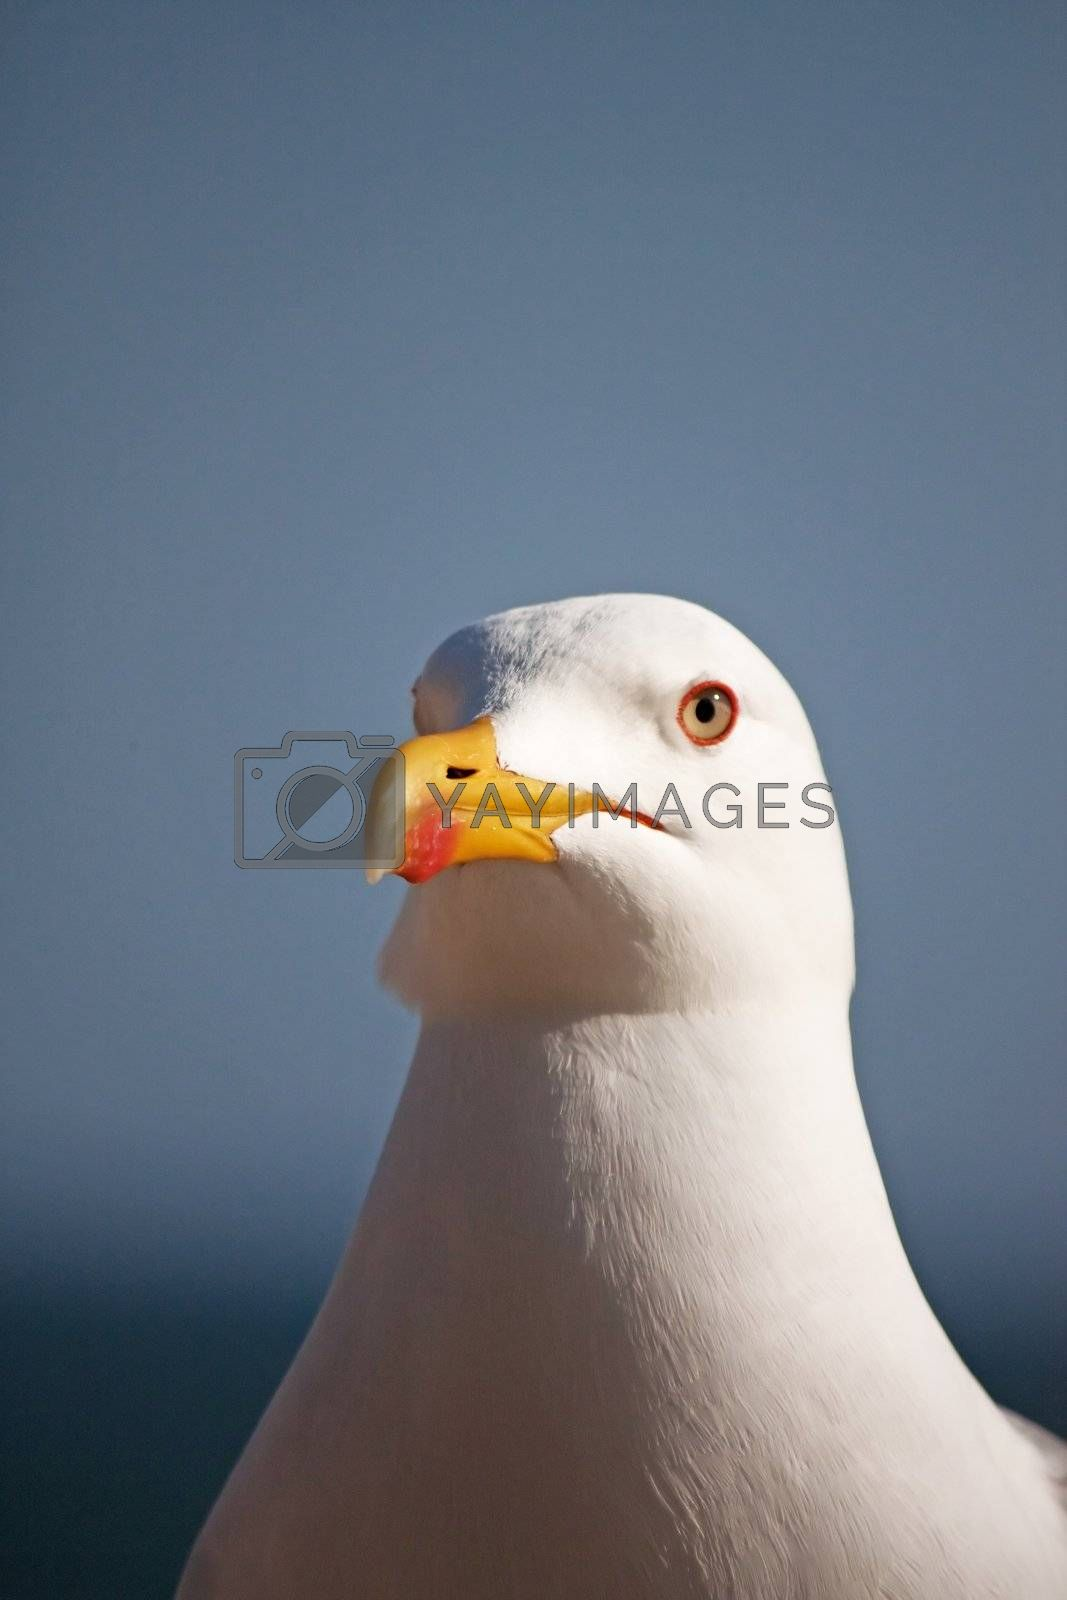 Close up view of a seagull's head staring at the camera.